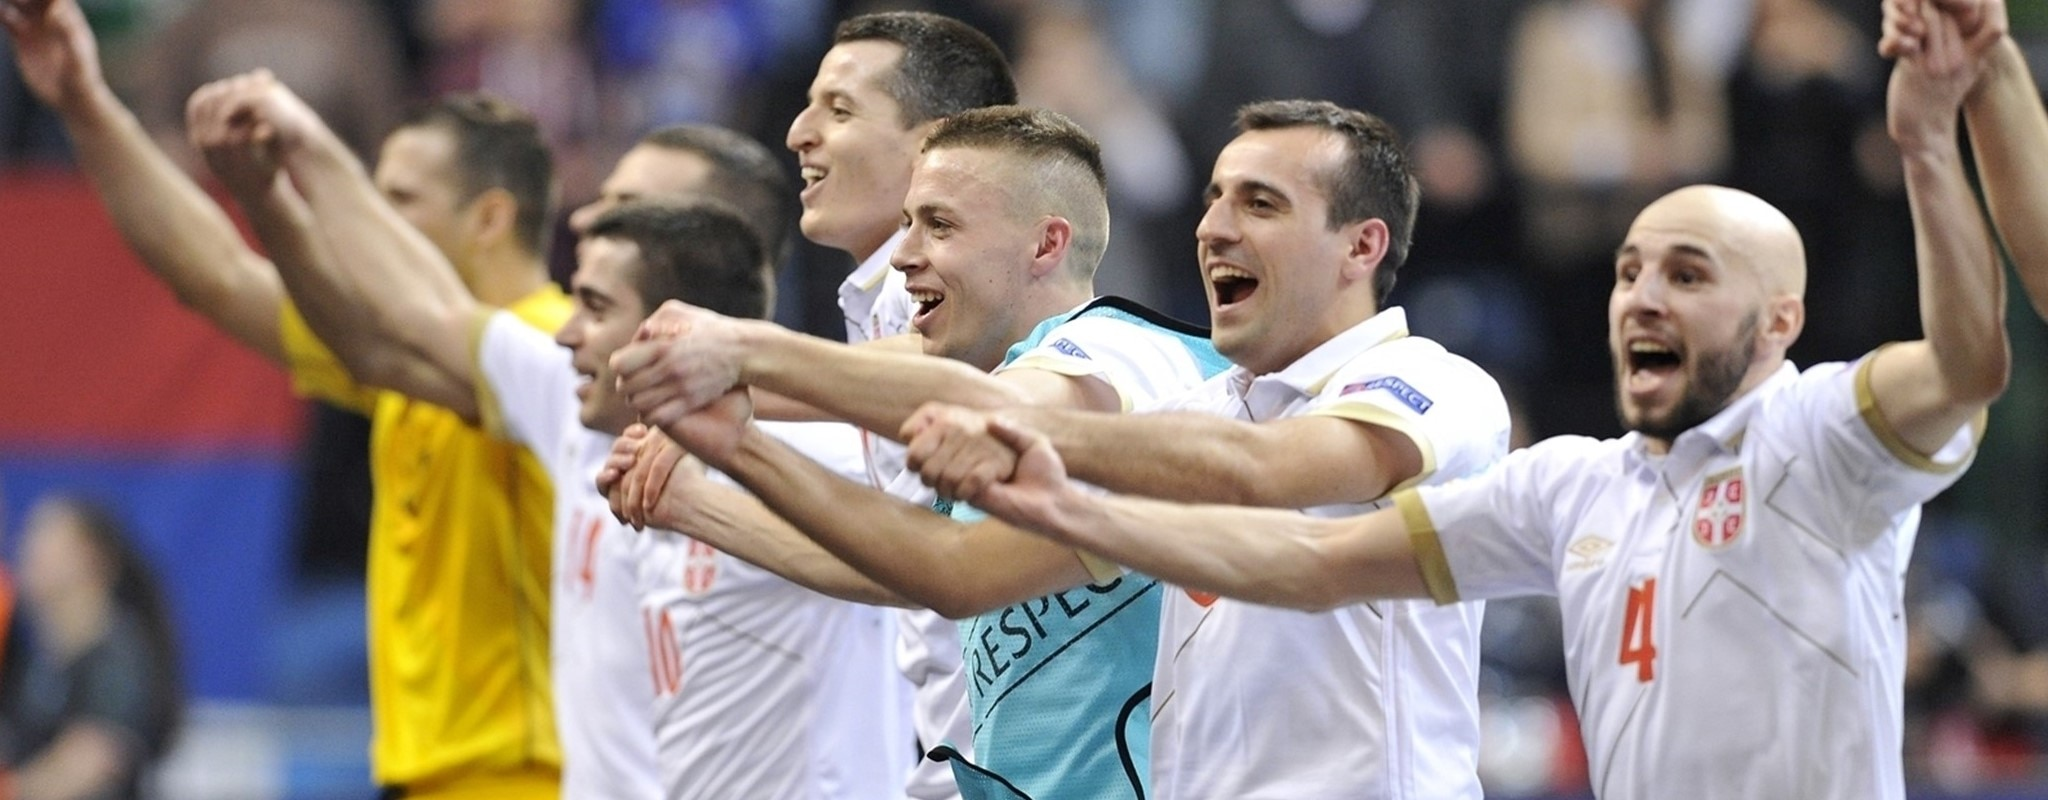 Futsal EURO quarter-finals confirmed